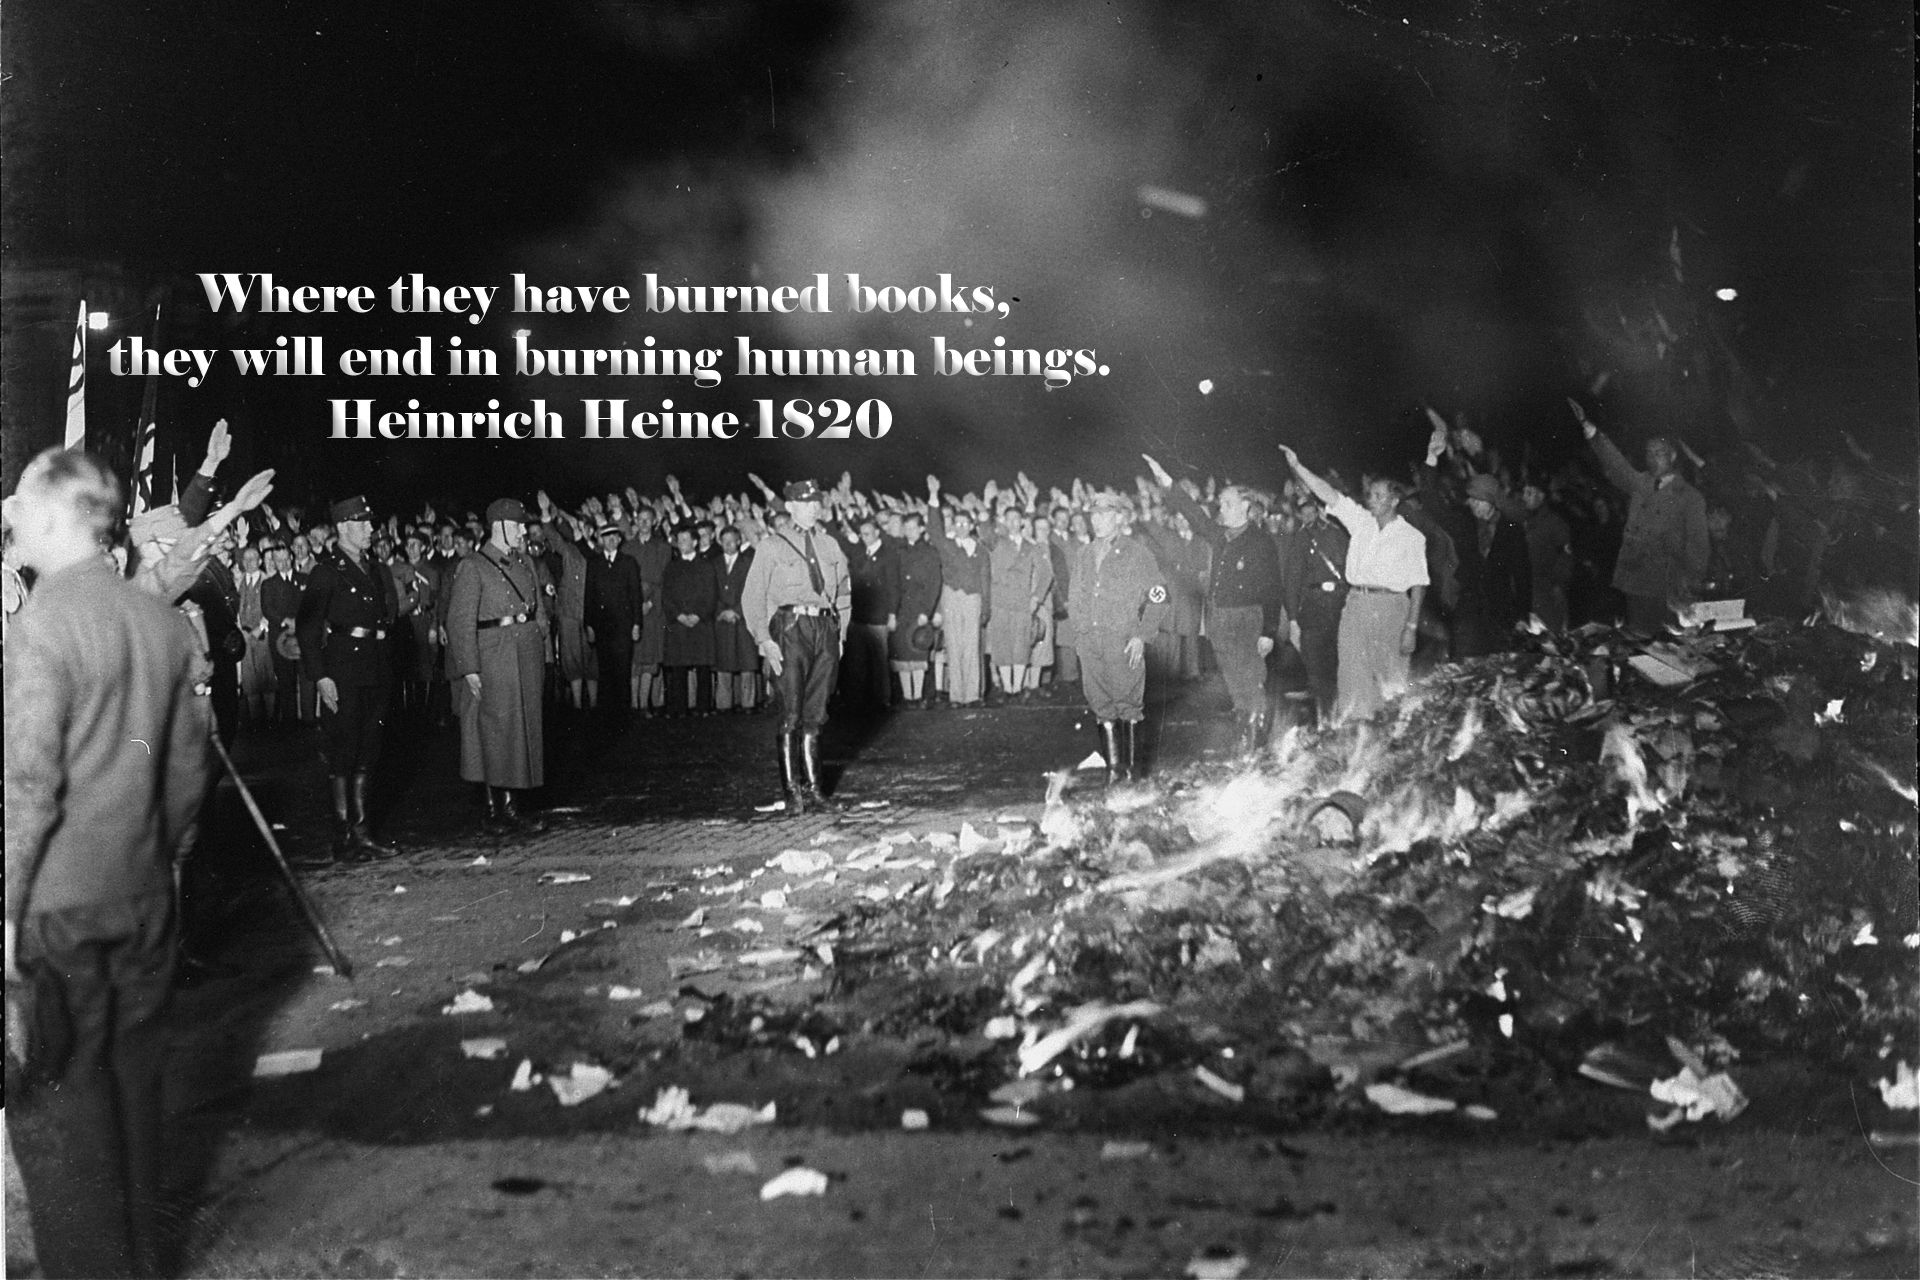 TIL that when the Nazi Party held its first book burnings ...